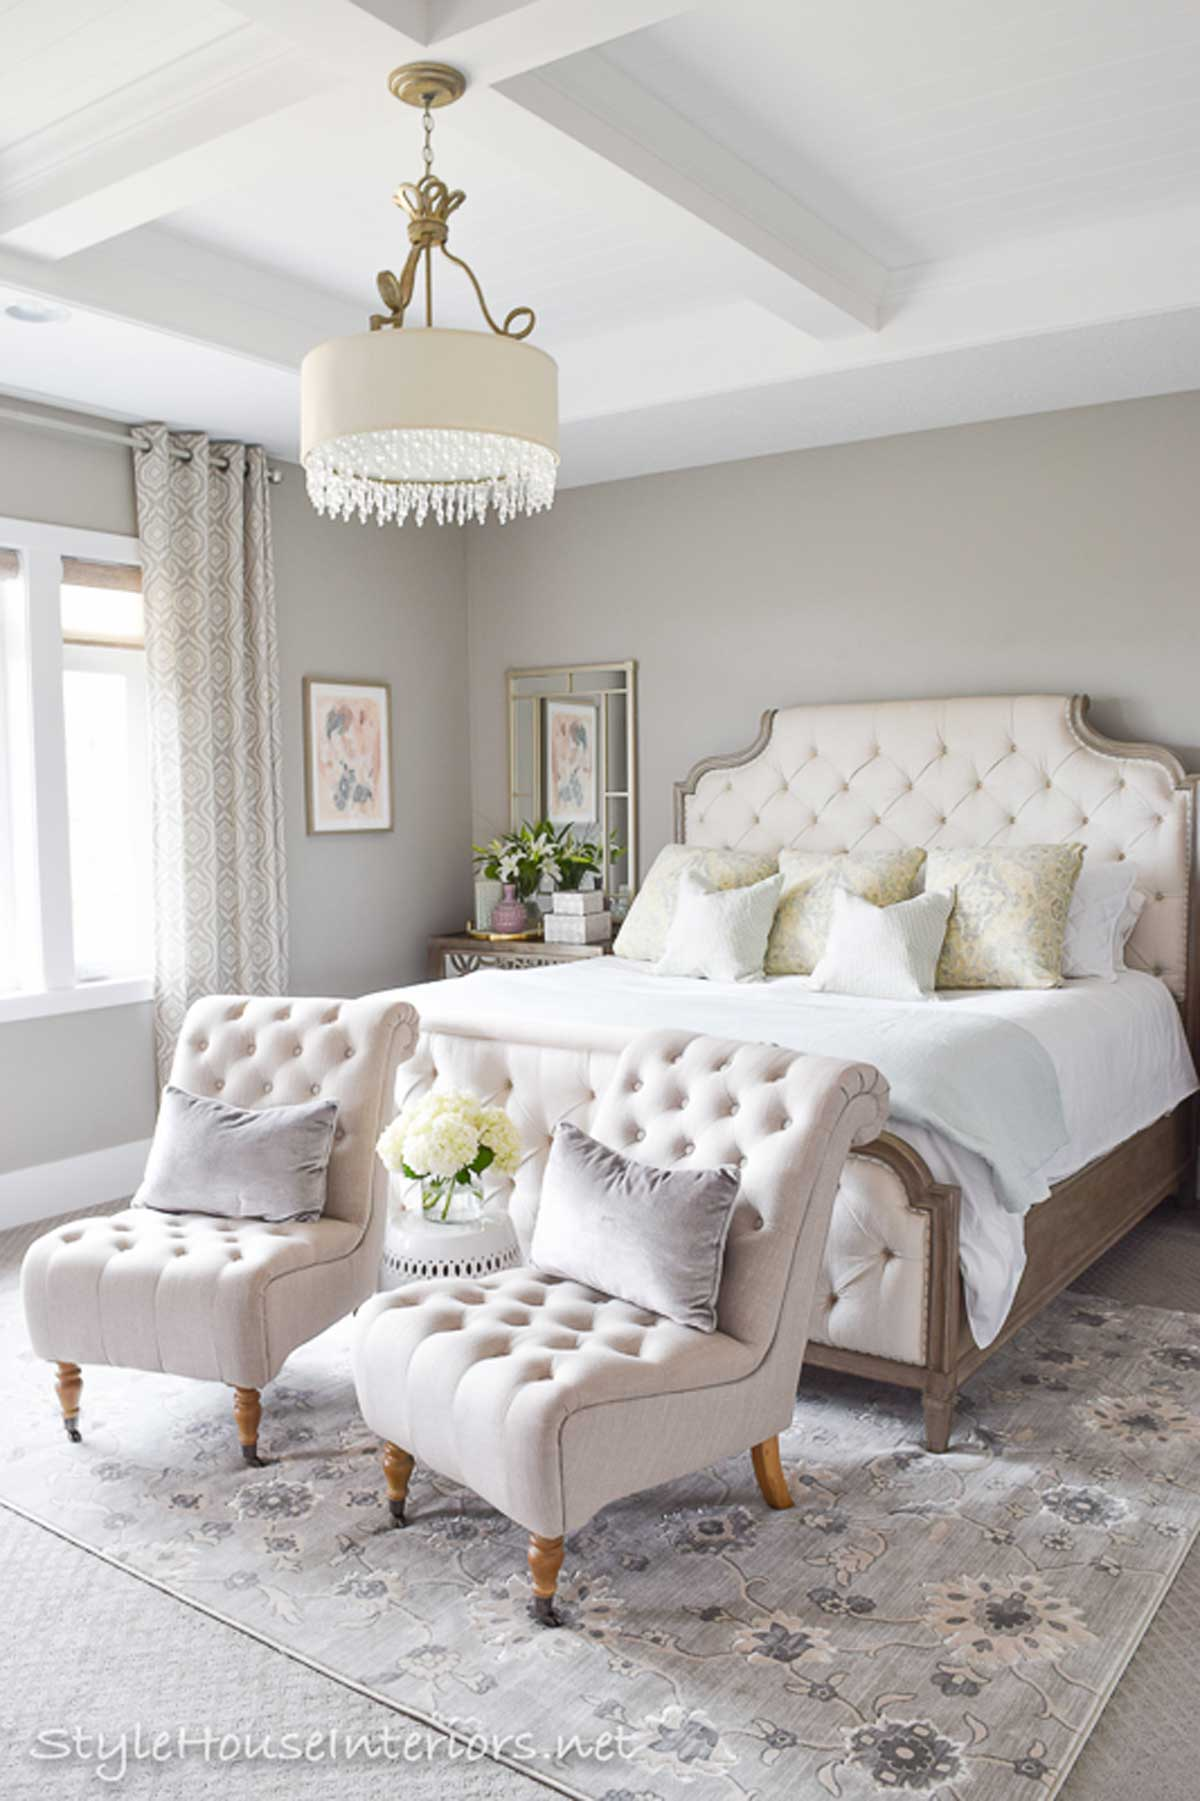 Luxe style - A style guide with expert knowledge on ... on Room Decor Pictures  id=14198